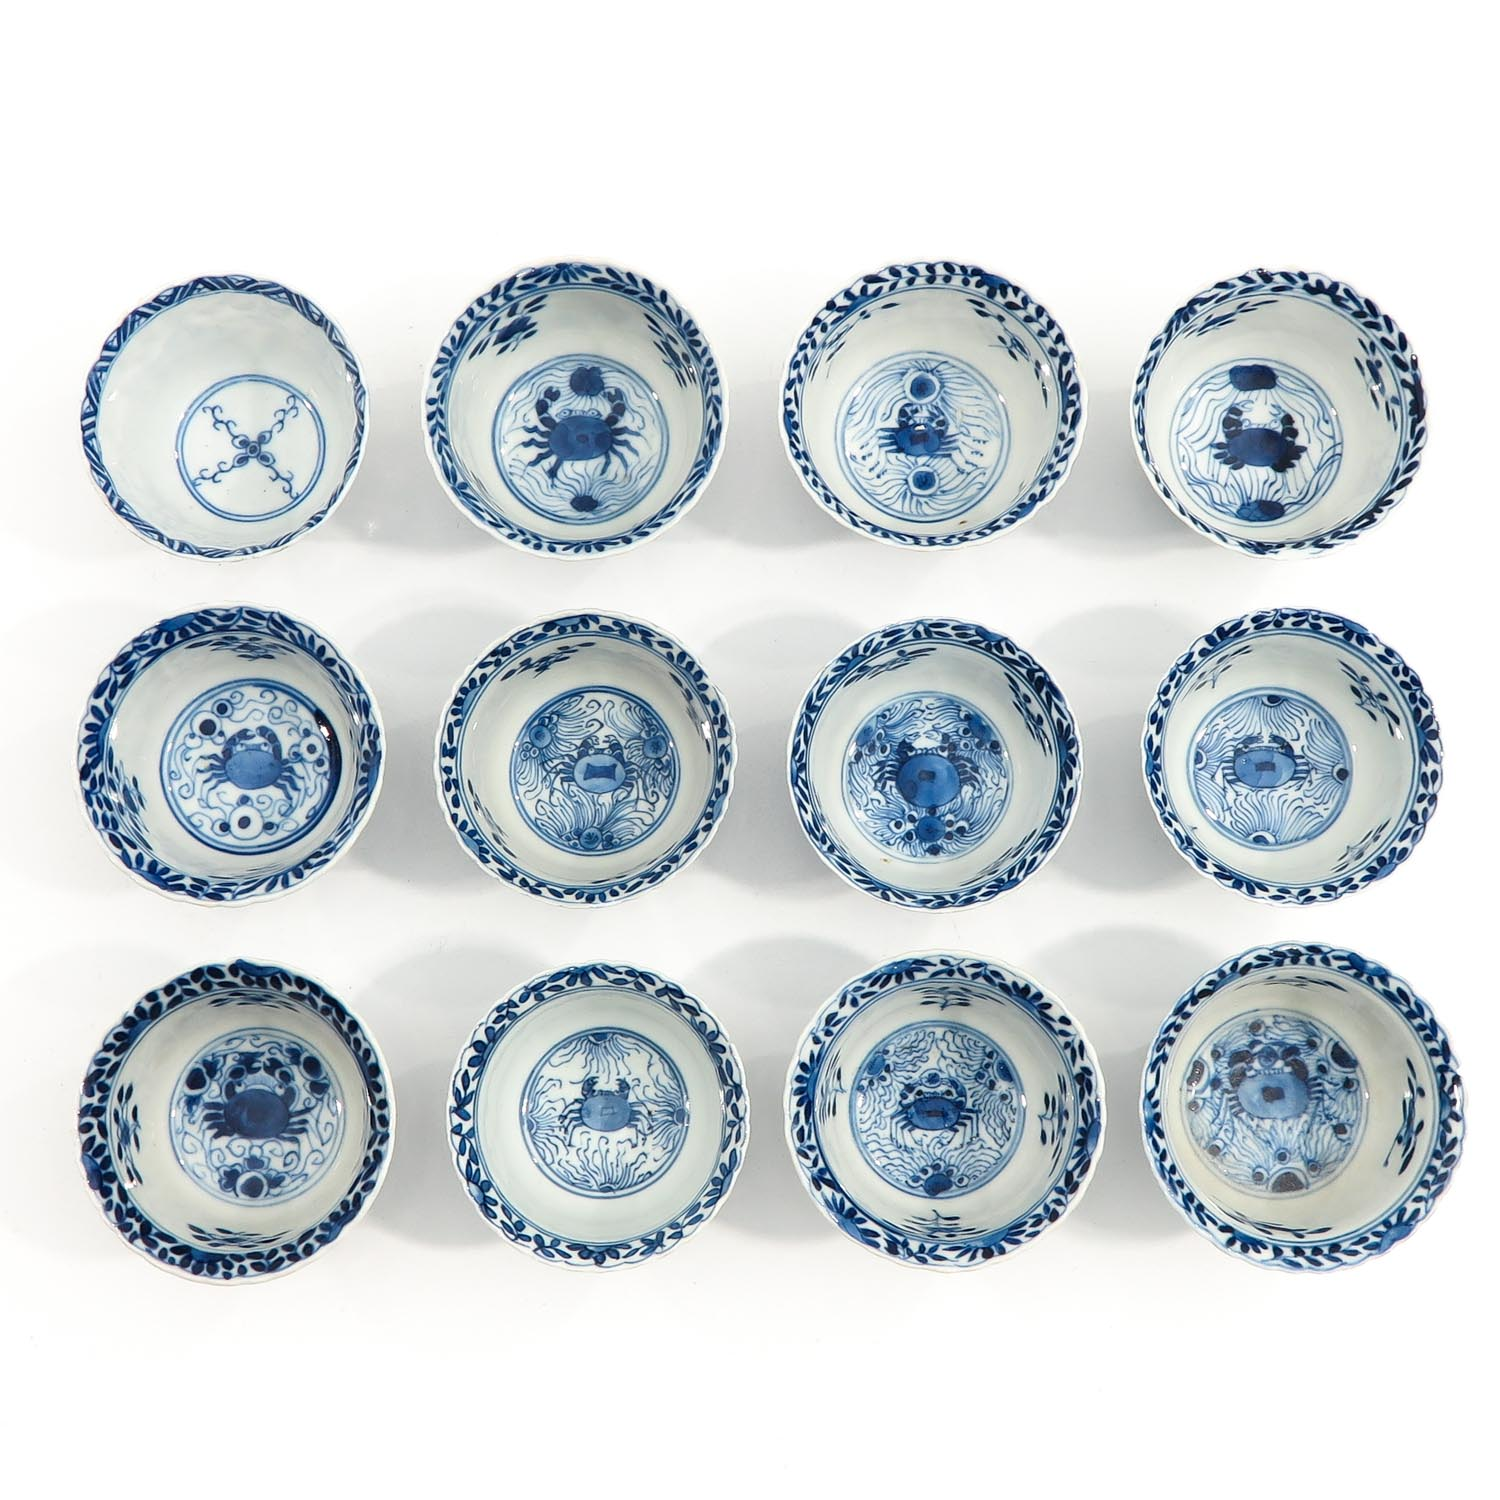 A Series of 12 Cups and Saucers - Image 5 of 10